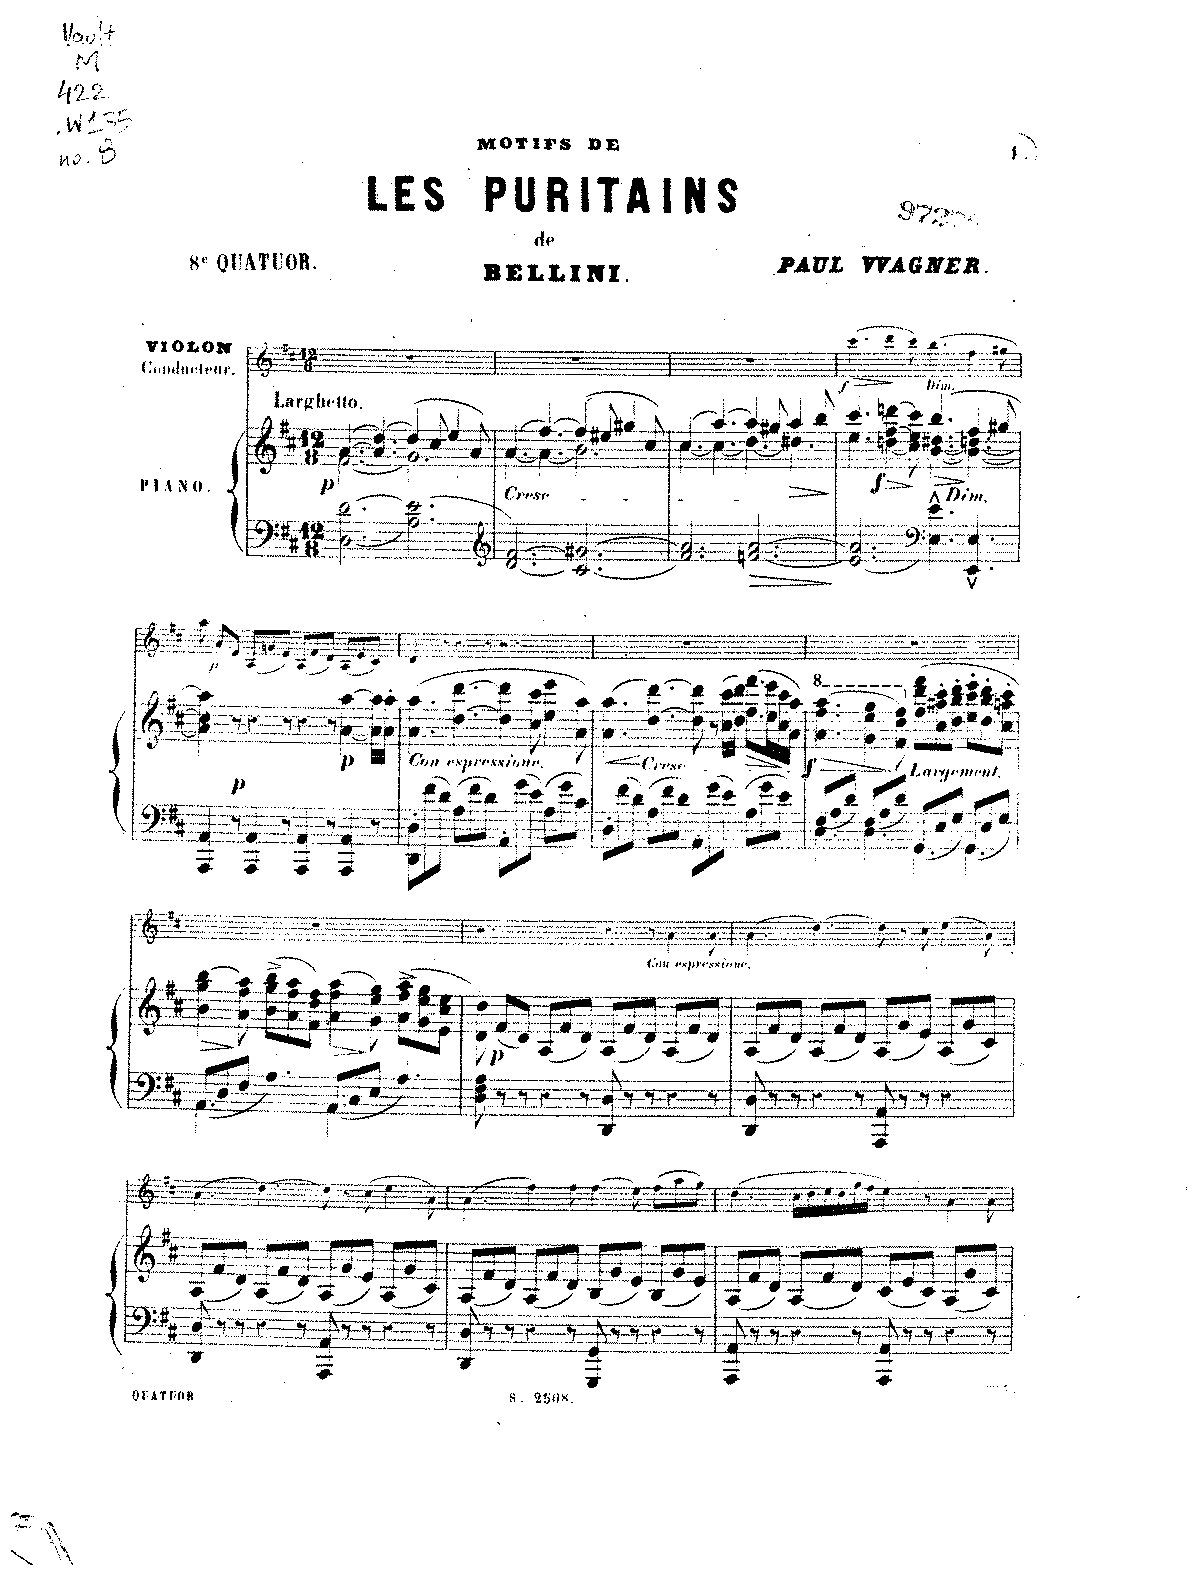 PMLP276161-Wagner, Paul - Quartet No8 Puritani PS Sibley.1802.16410.pdf